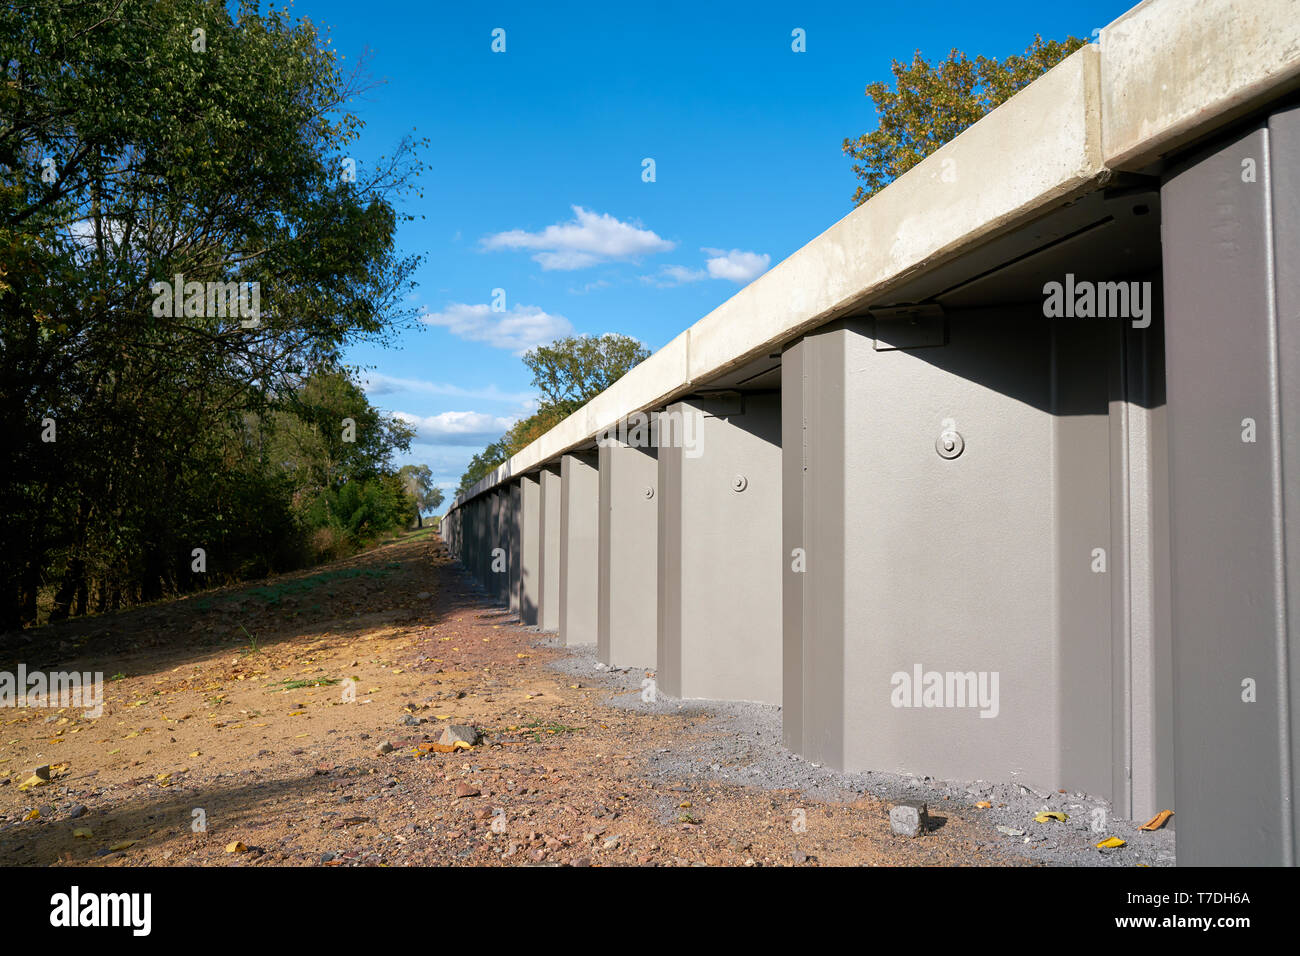 Flood protection wall on the banks of the Elbe near Magdeburg - Stock Image